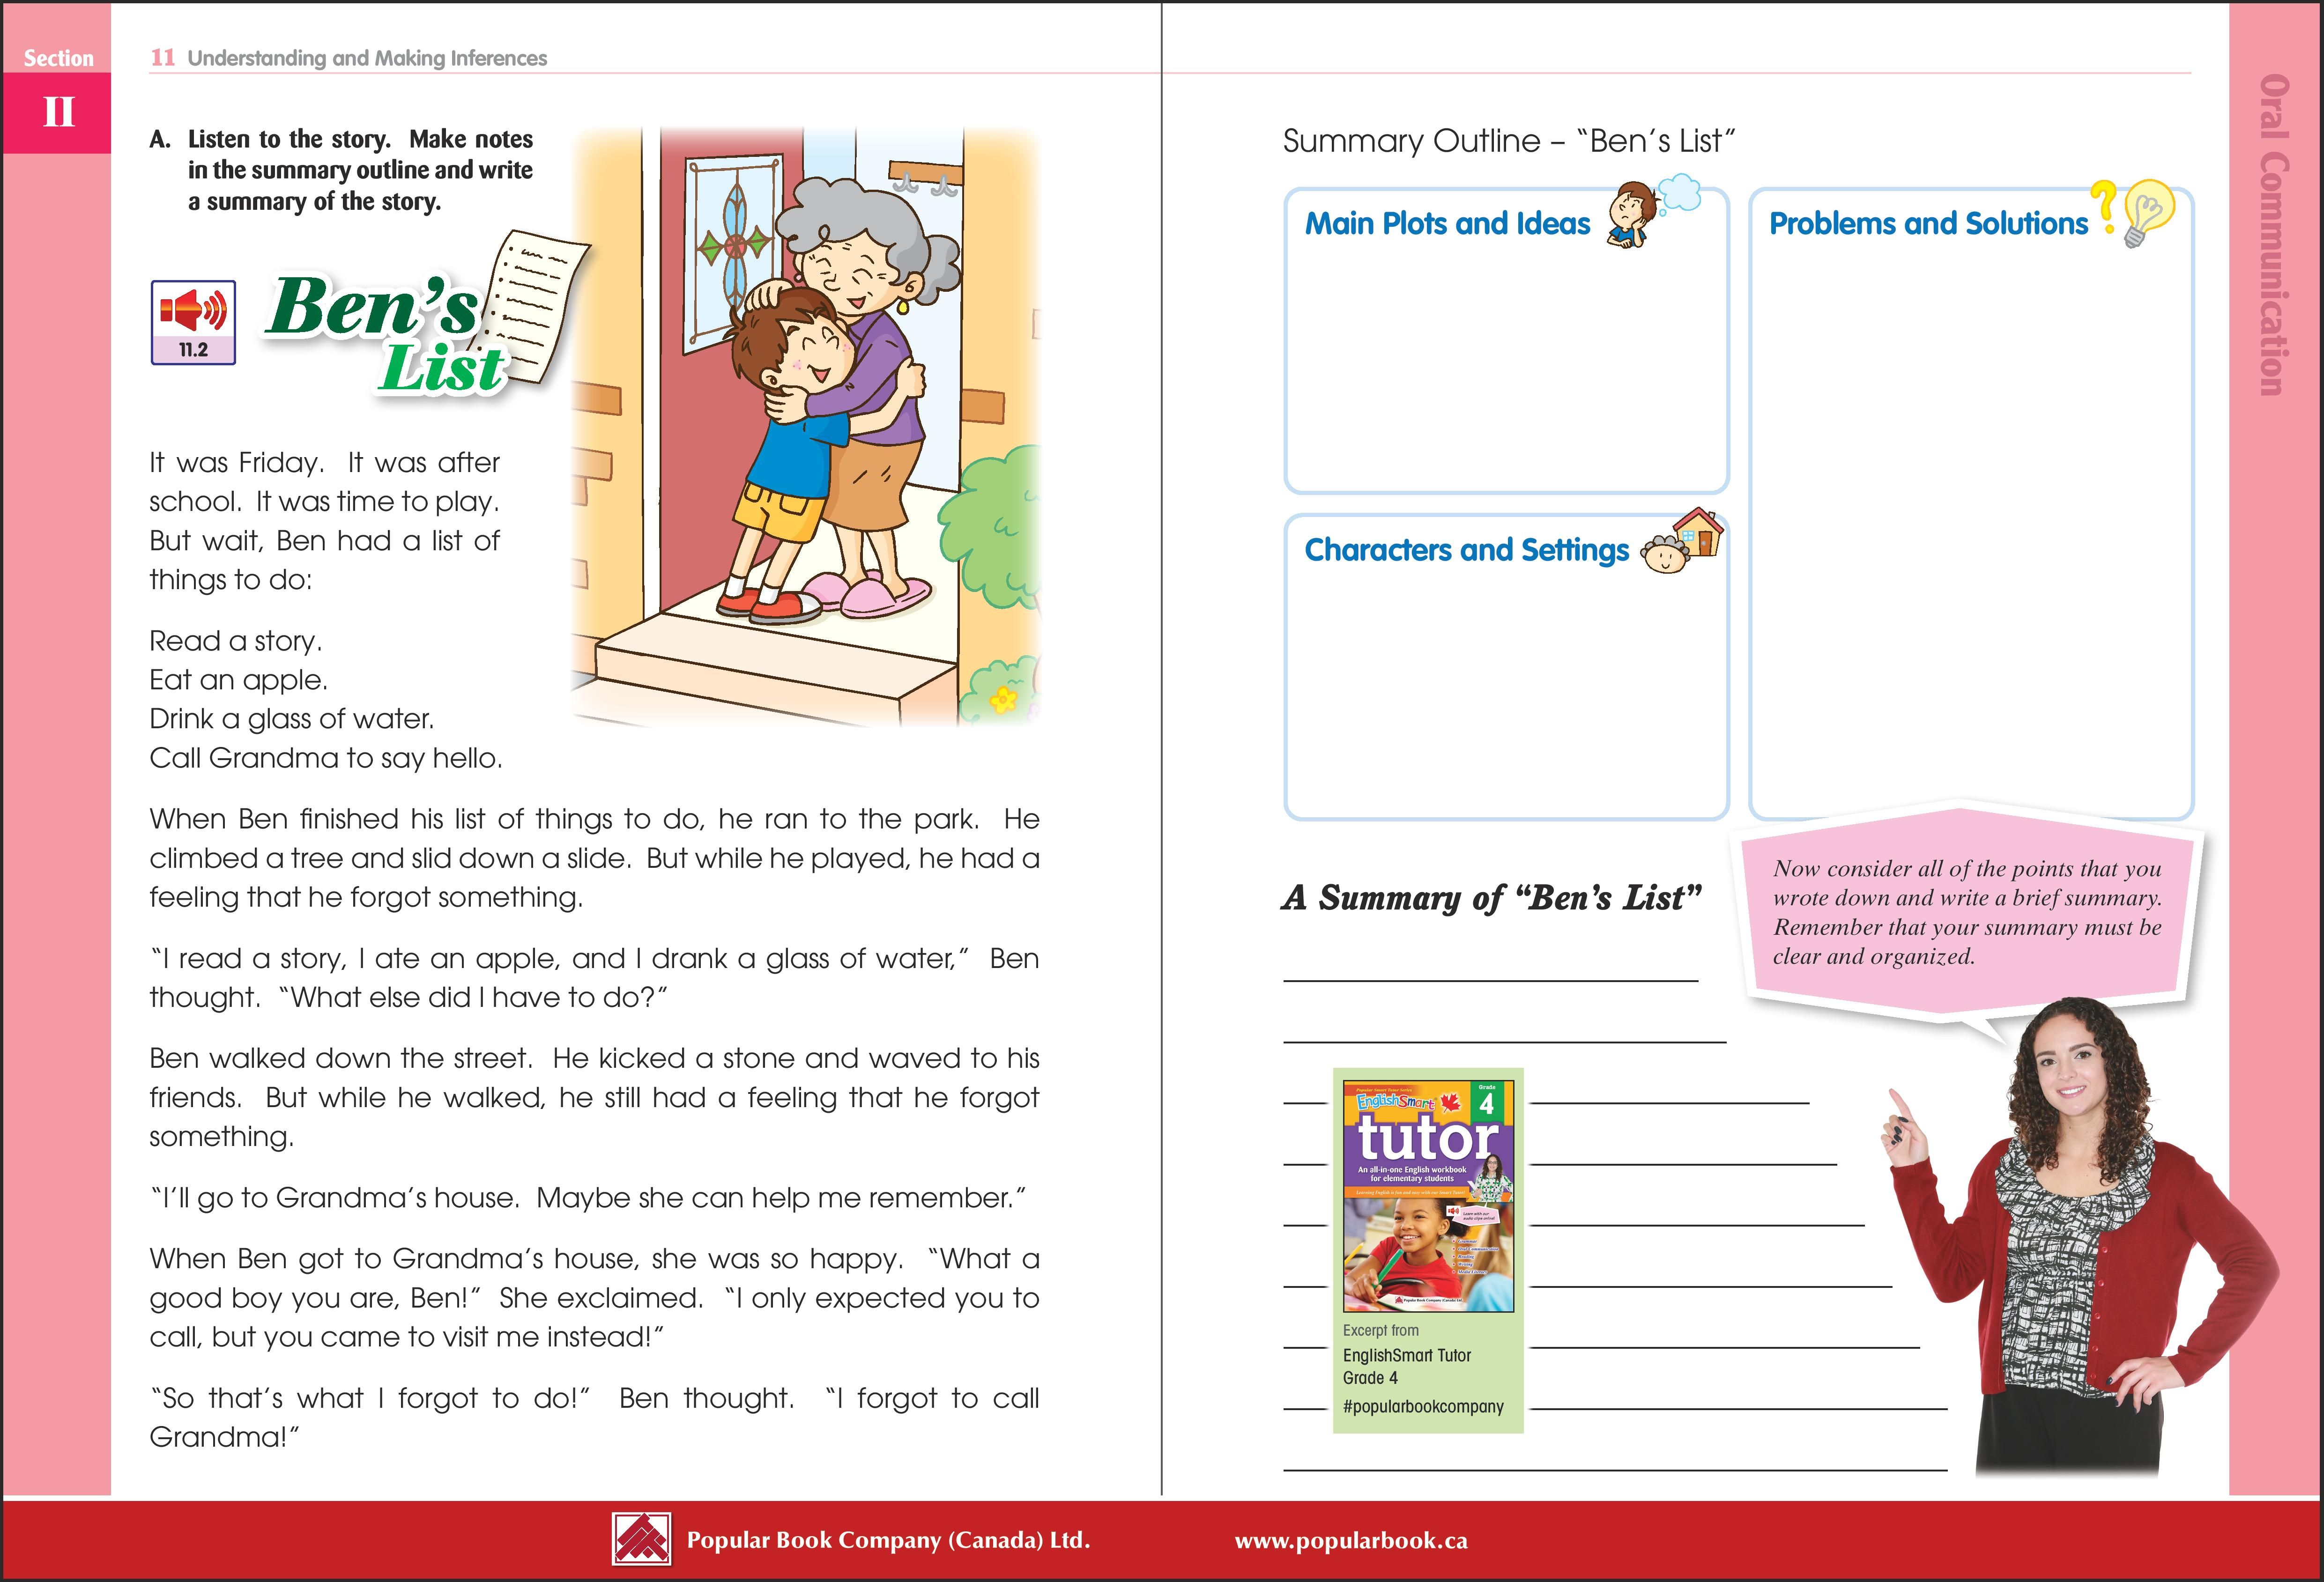 Download The Free Sample Pages From Englishsmart Tutor